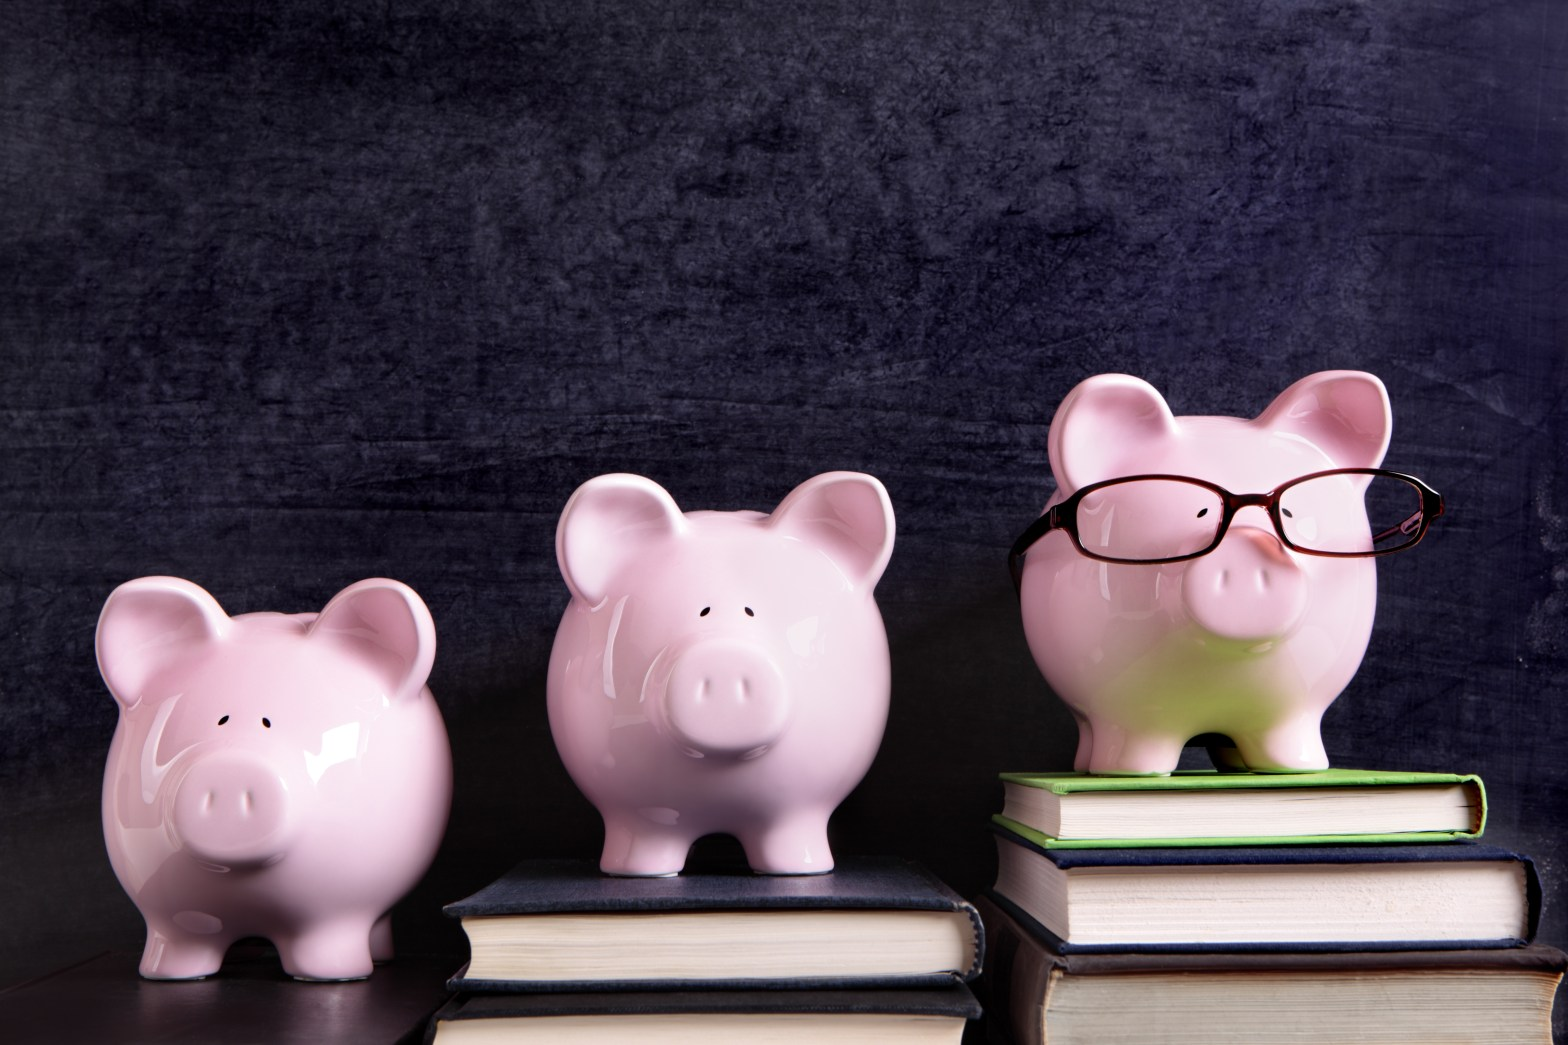 Image of three pigs on stacks of books in front of a chalkboard; courtesy of Shutterstock.